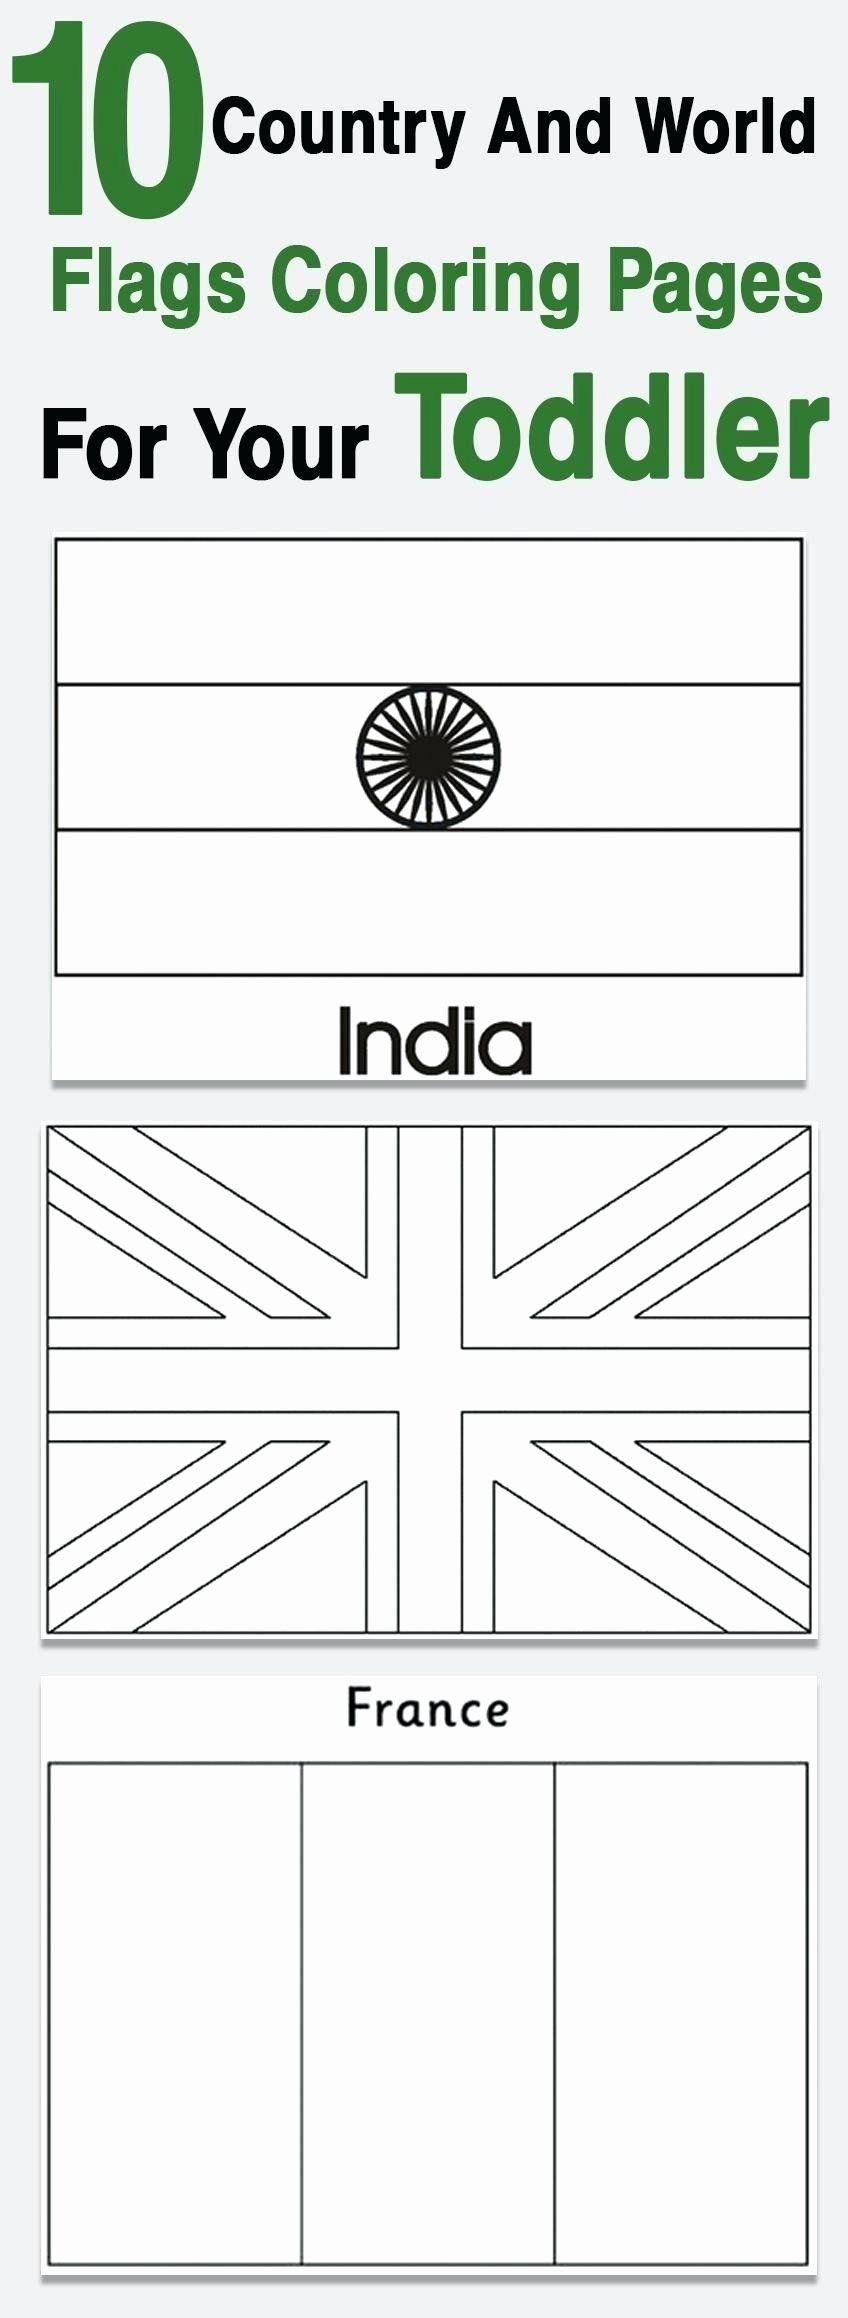 France Flag Coloring Sheet Inspirational Country Flag Coloring Sheets Redhatsheet In 2020 Flag Coloring Pages Flags Of The World Different Country Flags